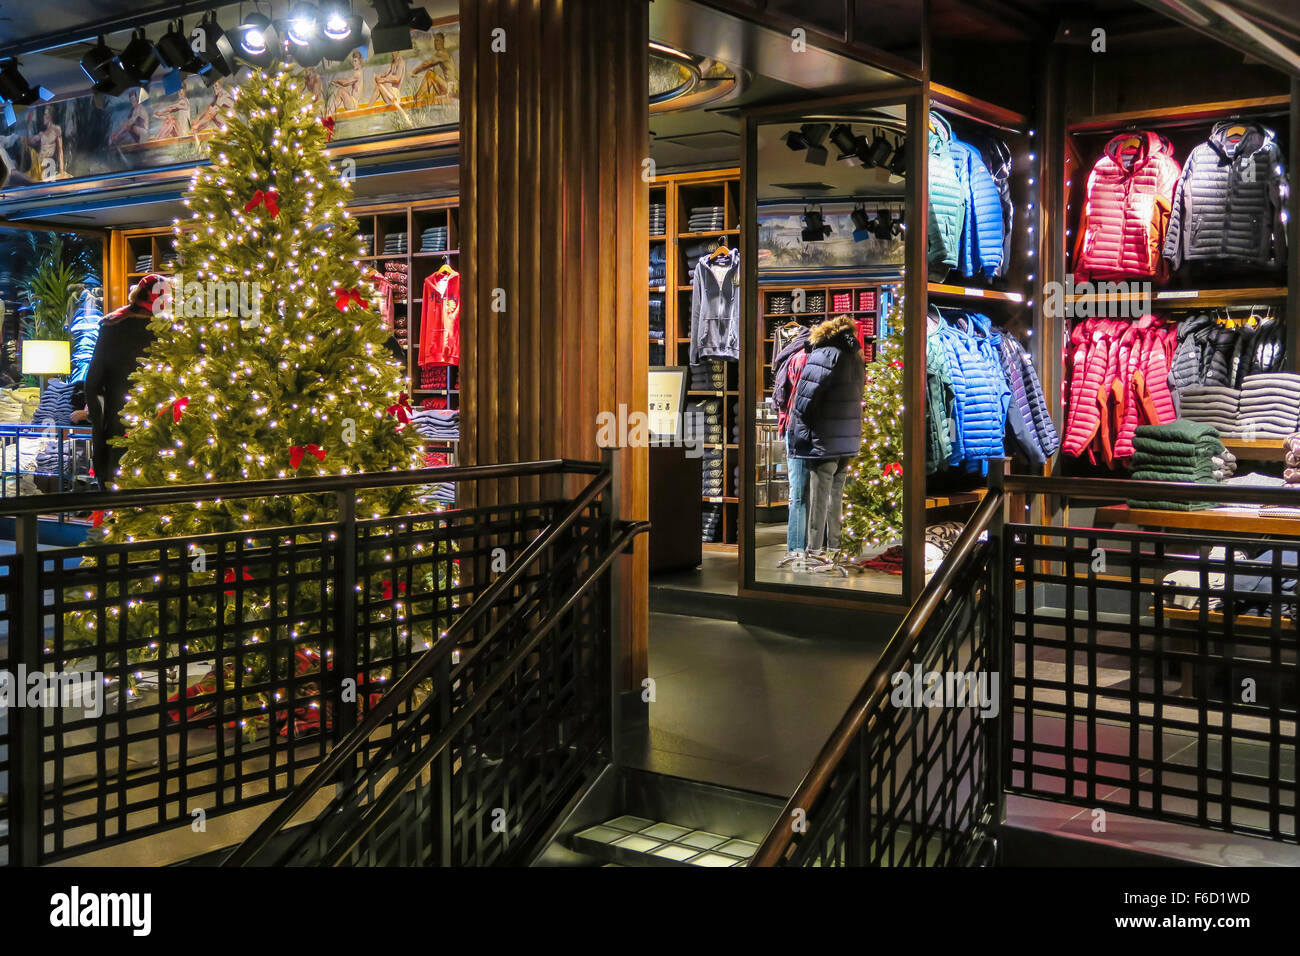 Abercrombie fitch flagship store interior fifth avenue for Abercrombie interior design and decoration